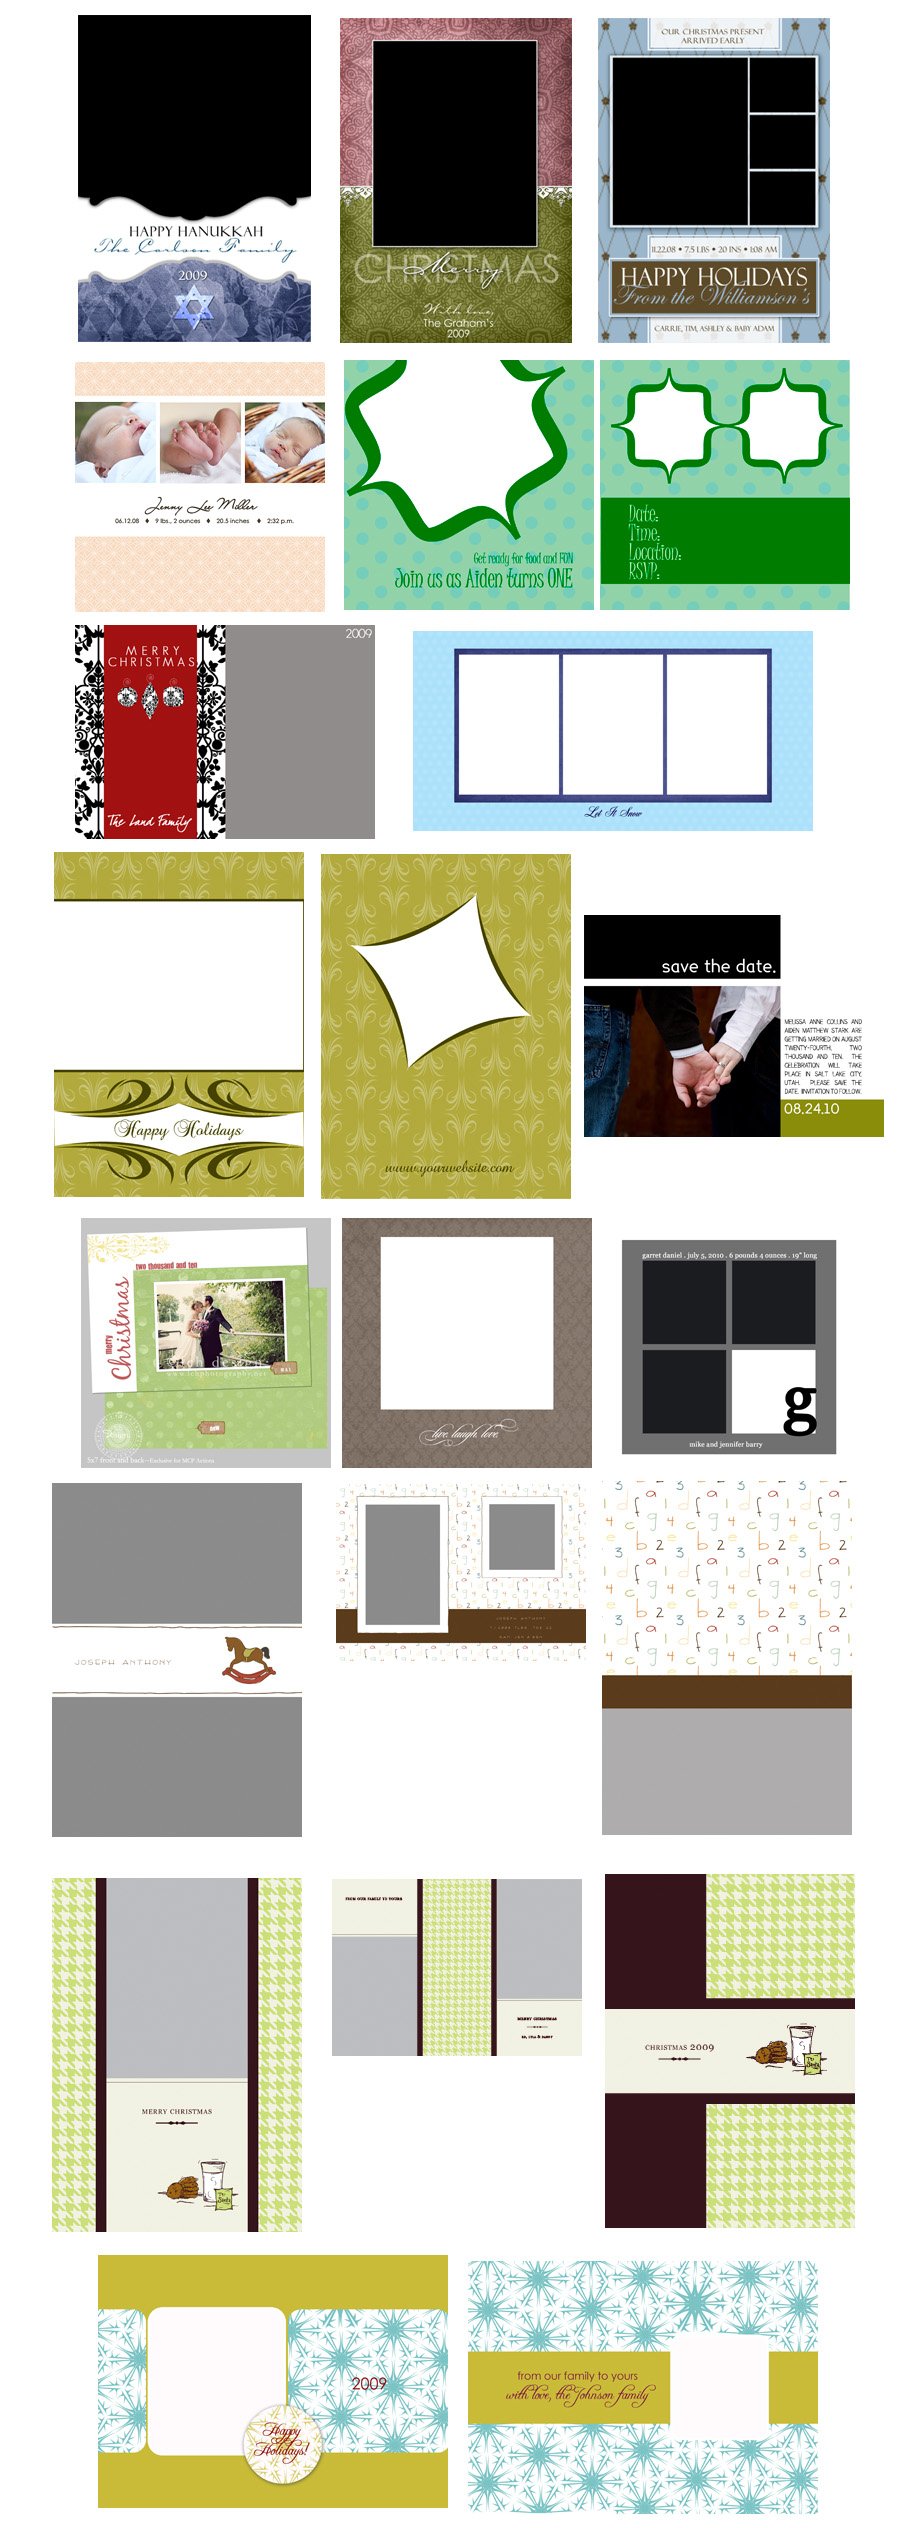 sample2-ad Last Card & Template Workshop for 2009 * 26 CARDS INCLUDED {November 18th} Announcements Photography Tips